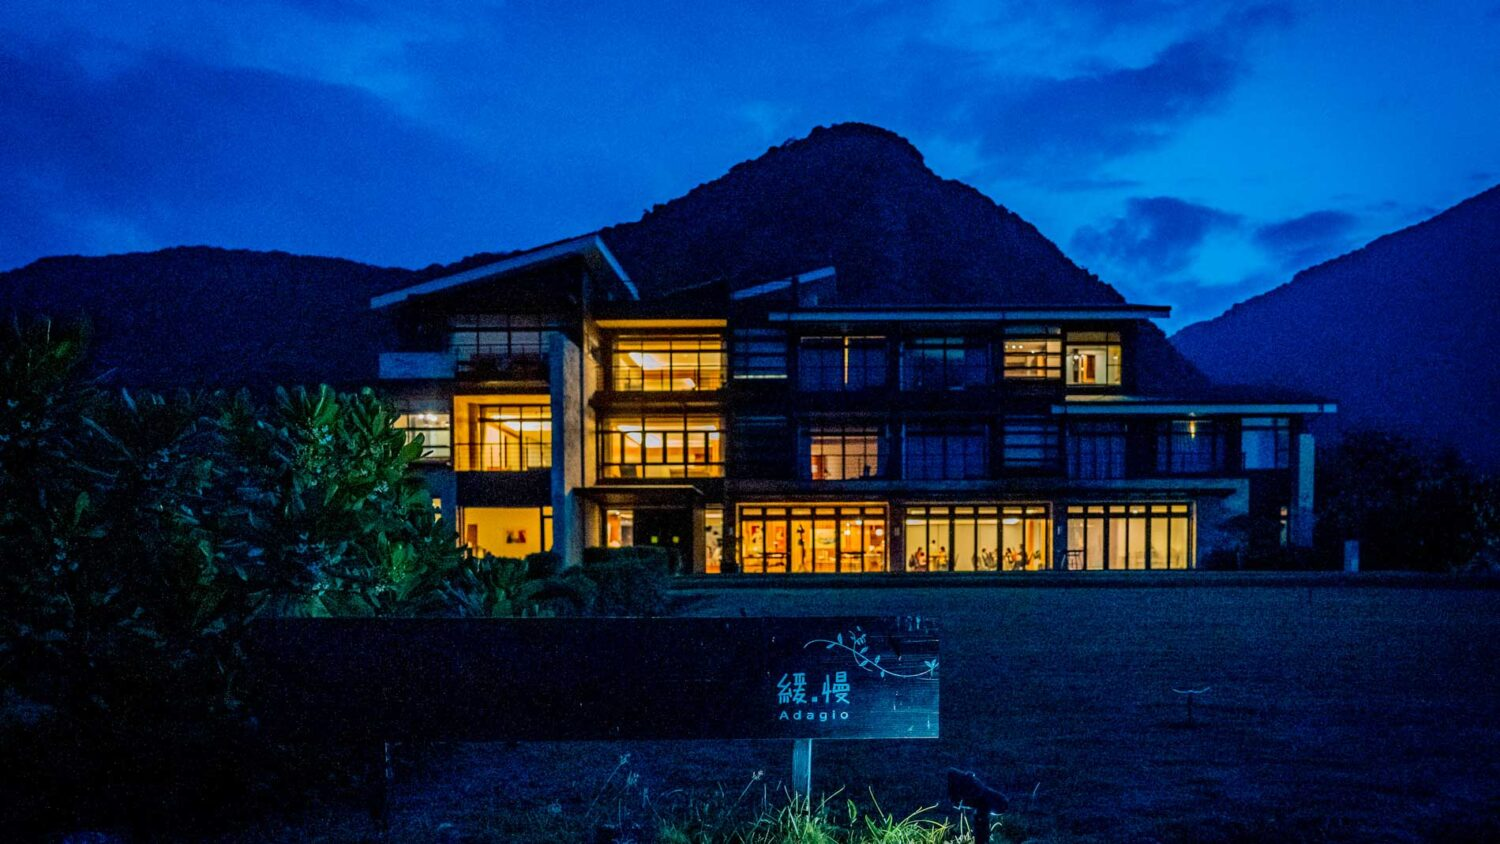 Hualien Homes Away from Home